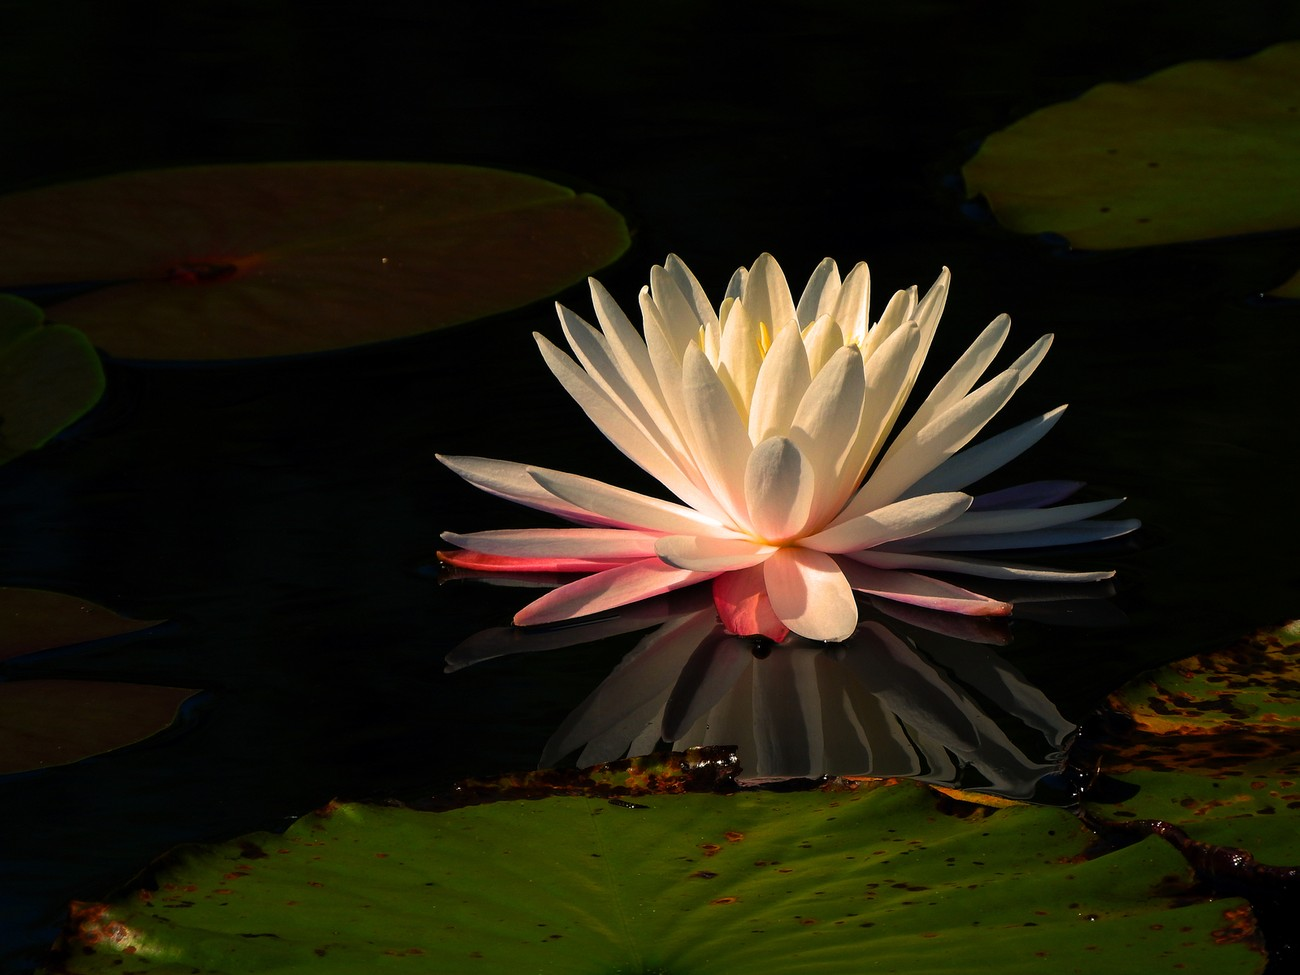 Water Lily reflecting on calm water